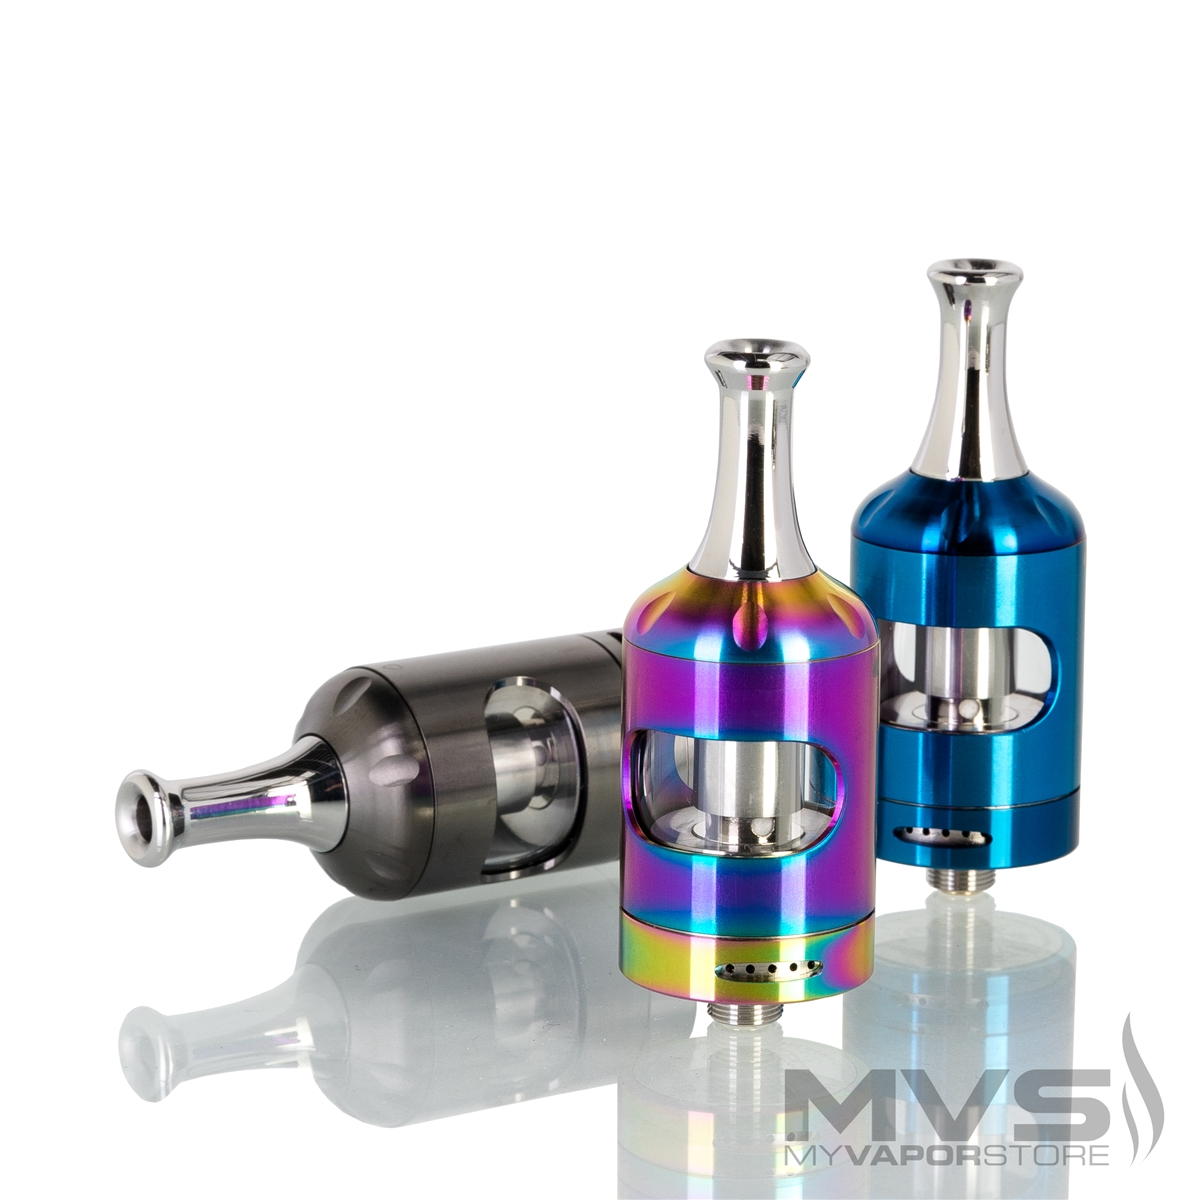 f41049773f4 Aspire Nautilus 2S Sub-Ohm and Mouth to Lung Tank